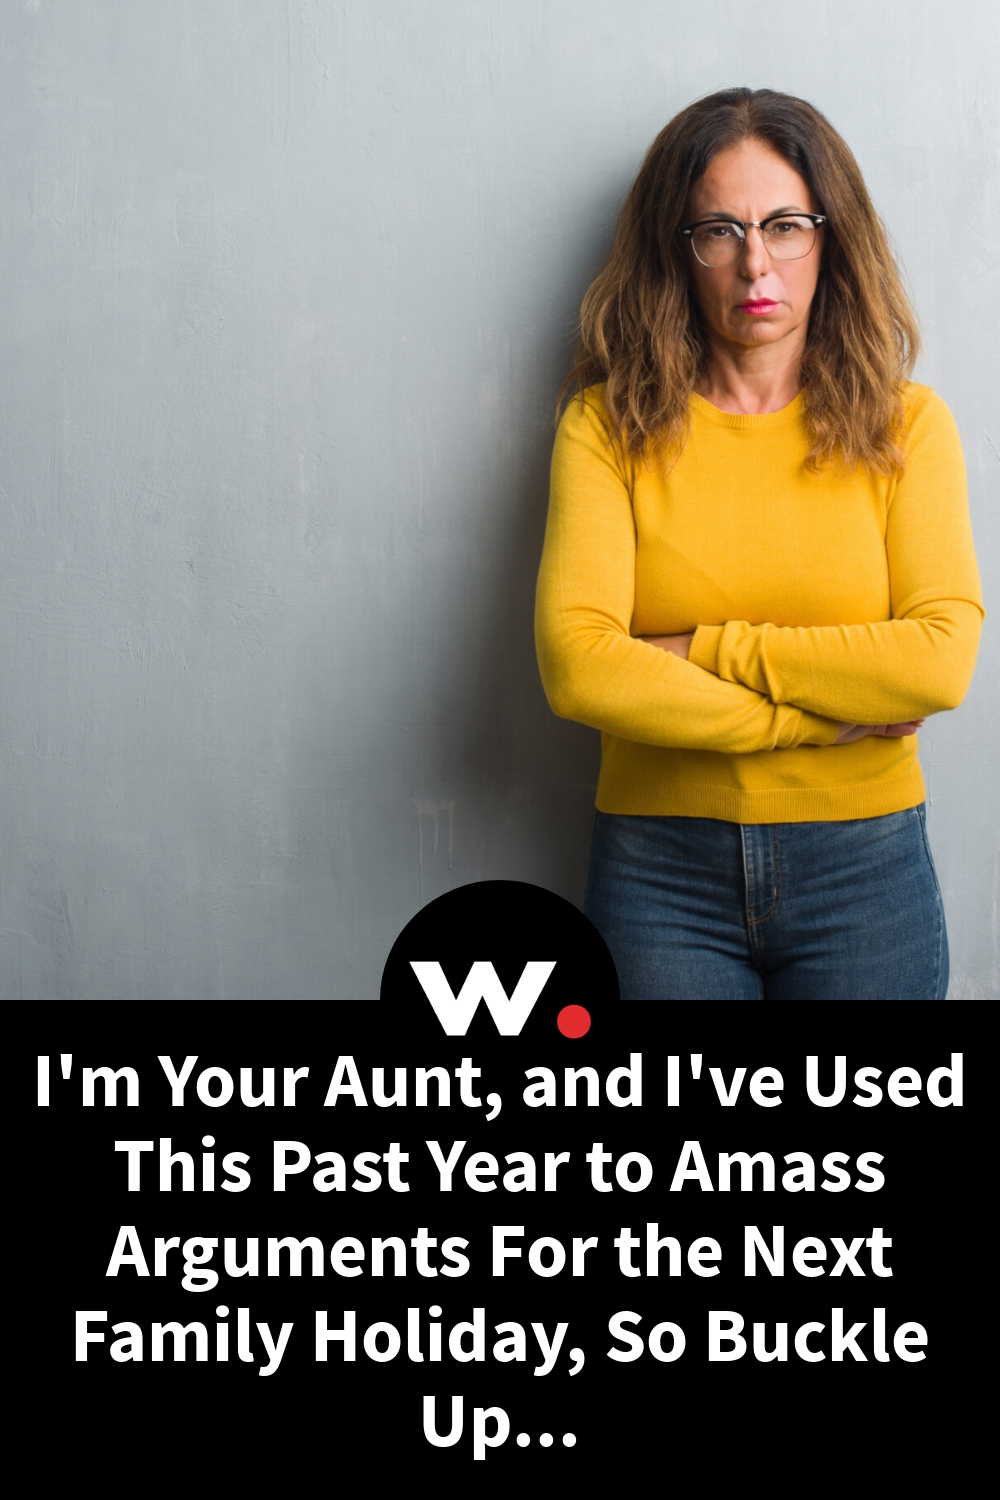 I'm Your Aunt, and I've Used This Past Year to Amass Arguments For the Next Family Holiday, So Buckle Up…